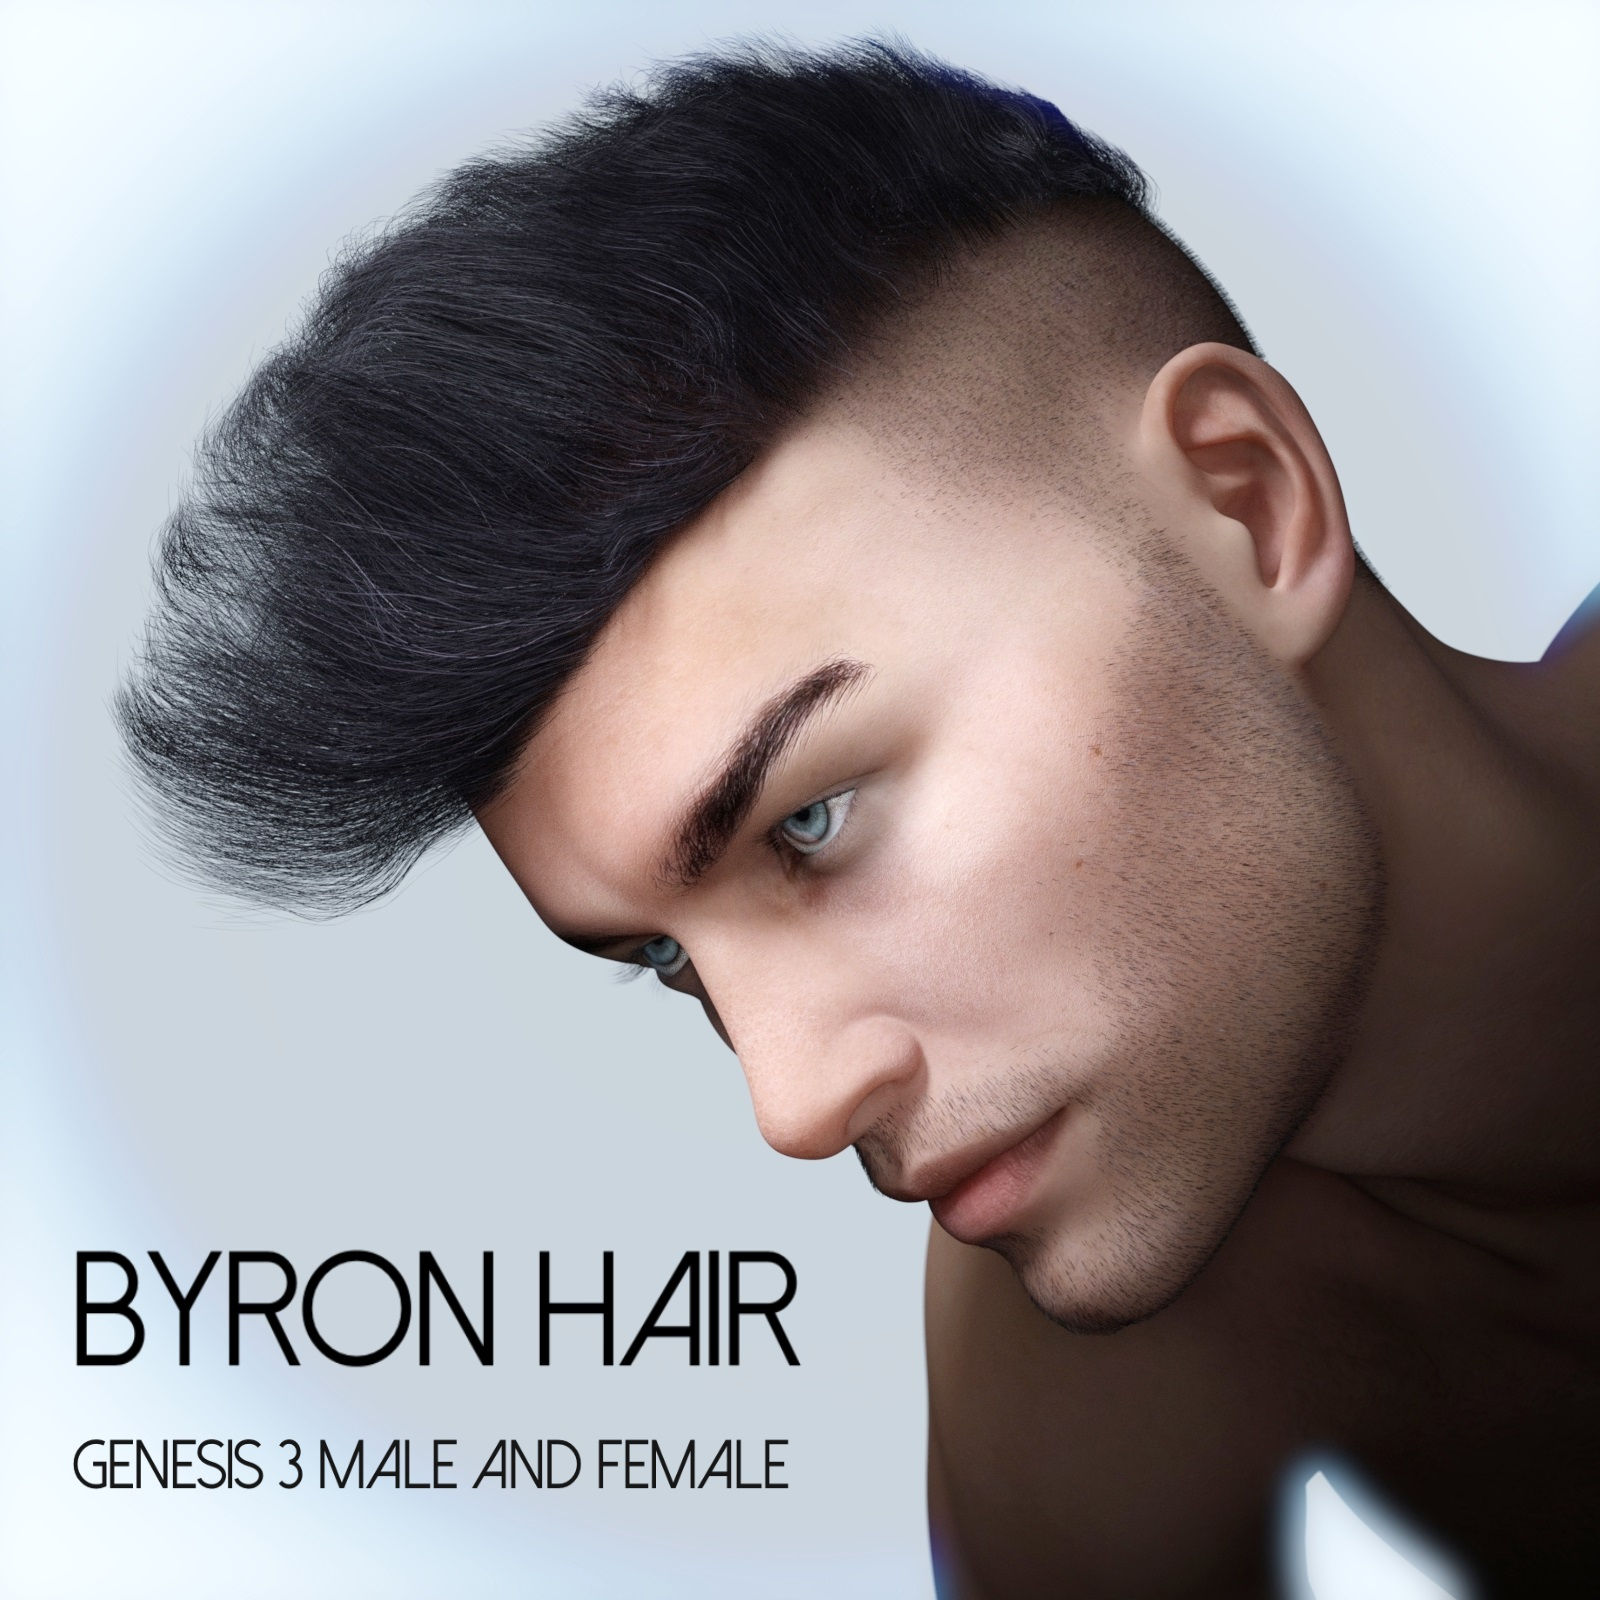 Byron Hair for Genesis 3 Males and Females